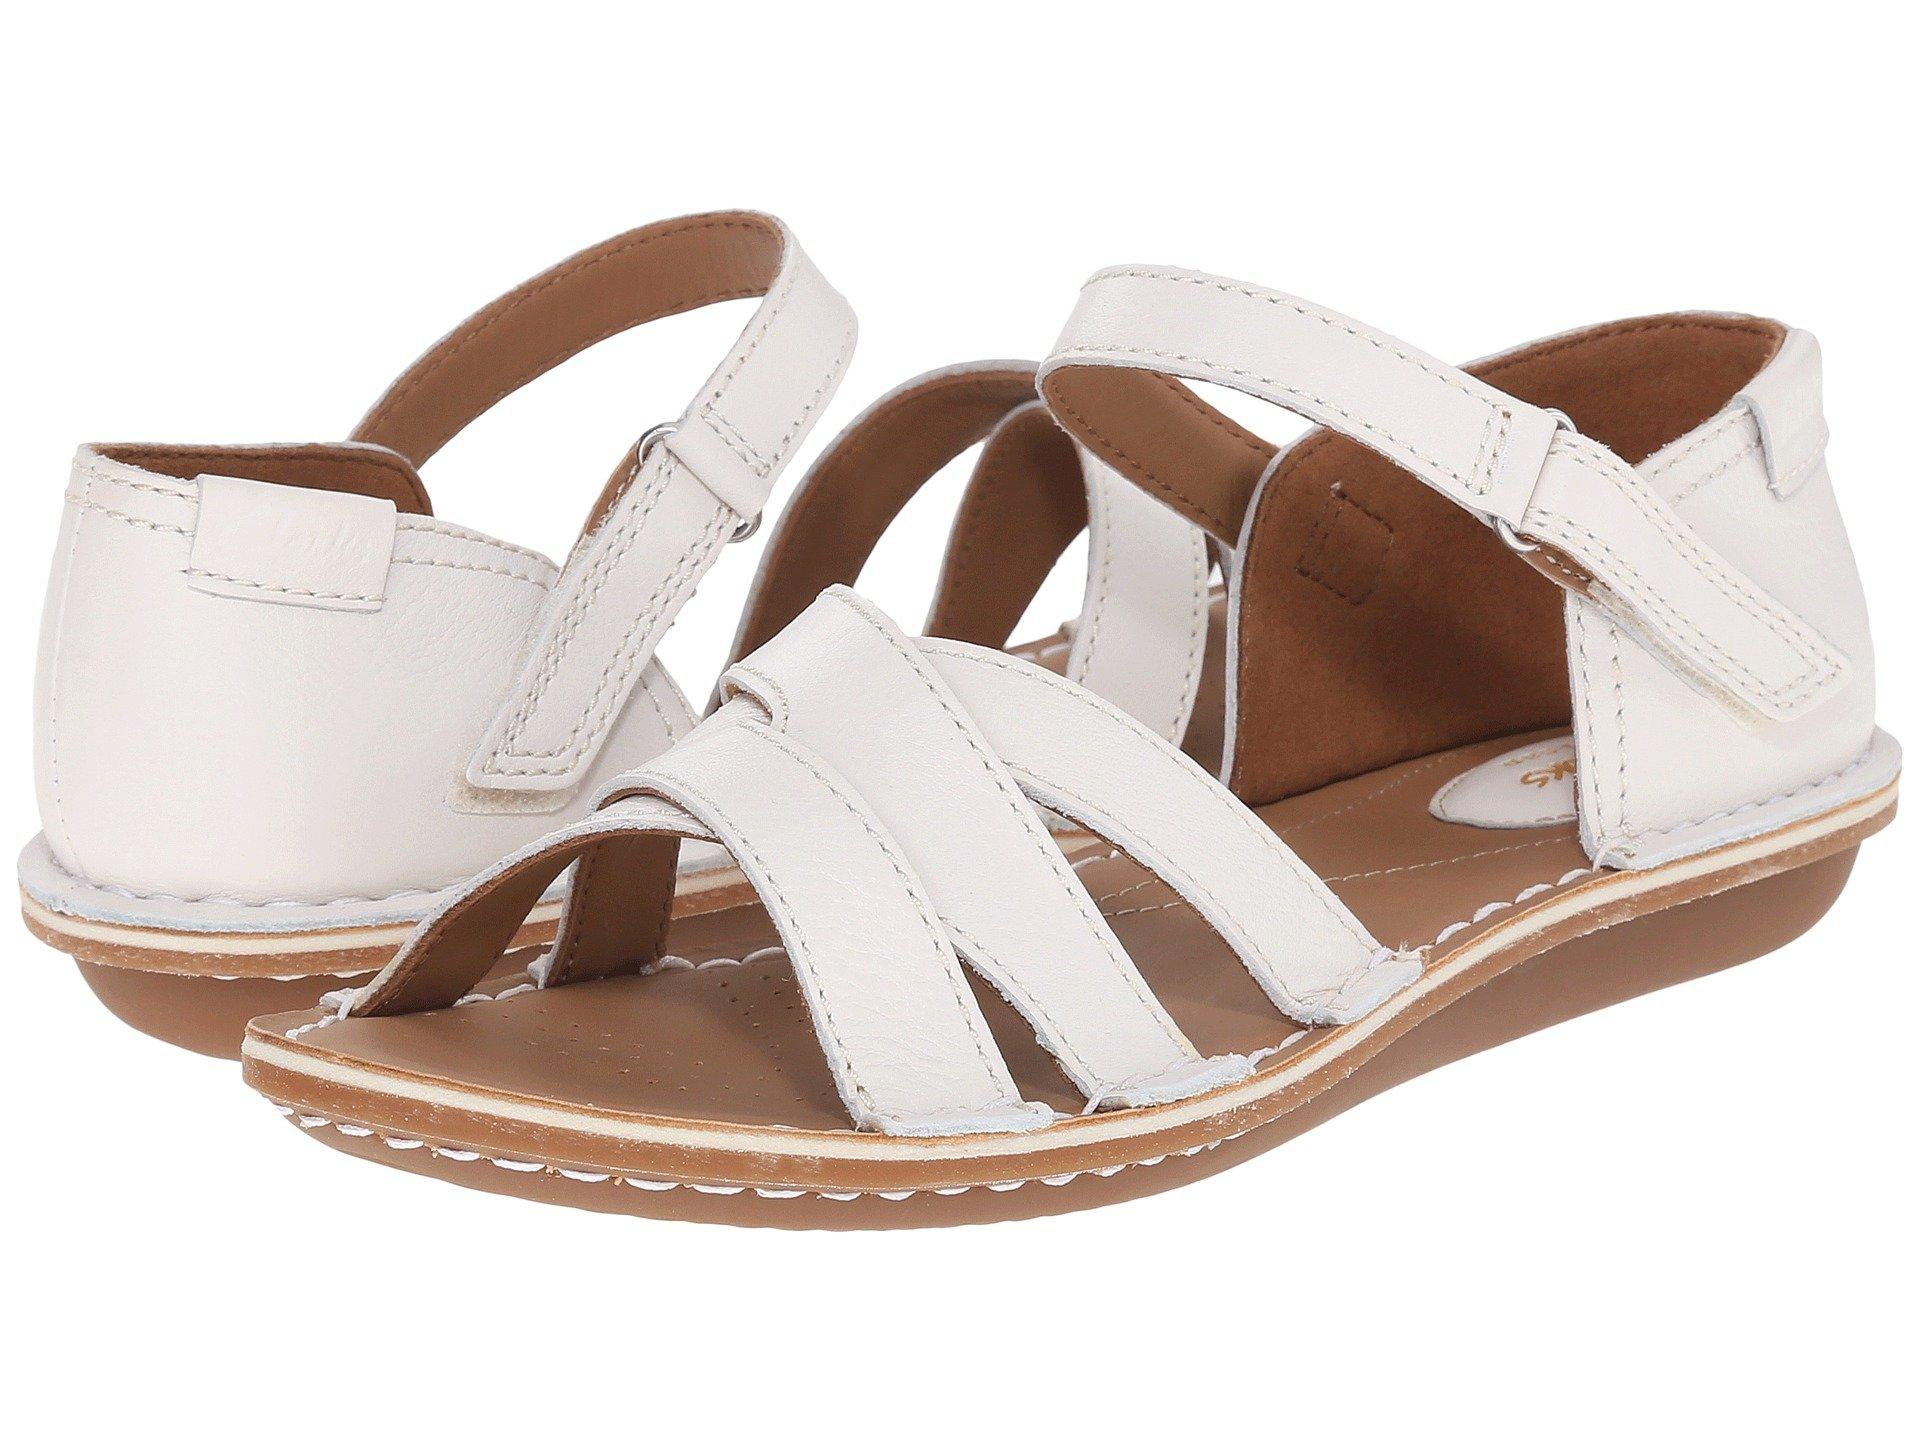 e65cb9750e83 Gallery. Previously sold at  6PM · Women s Flatform Sandals ...